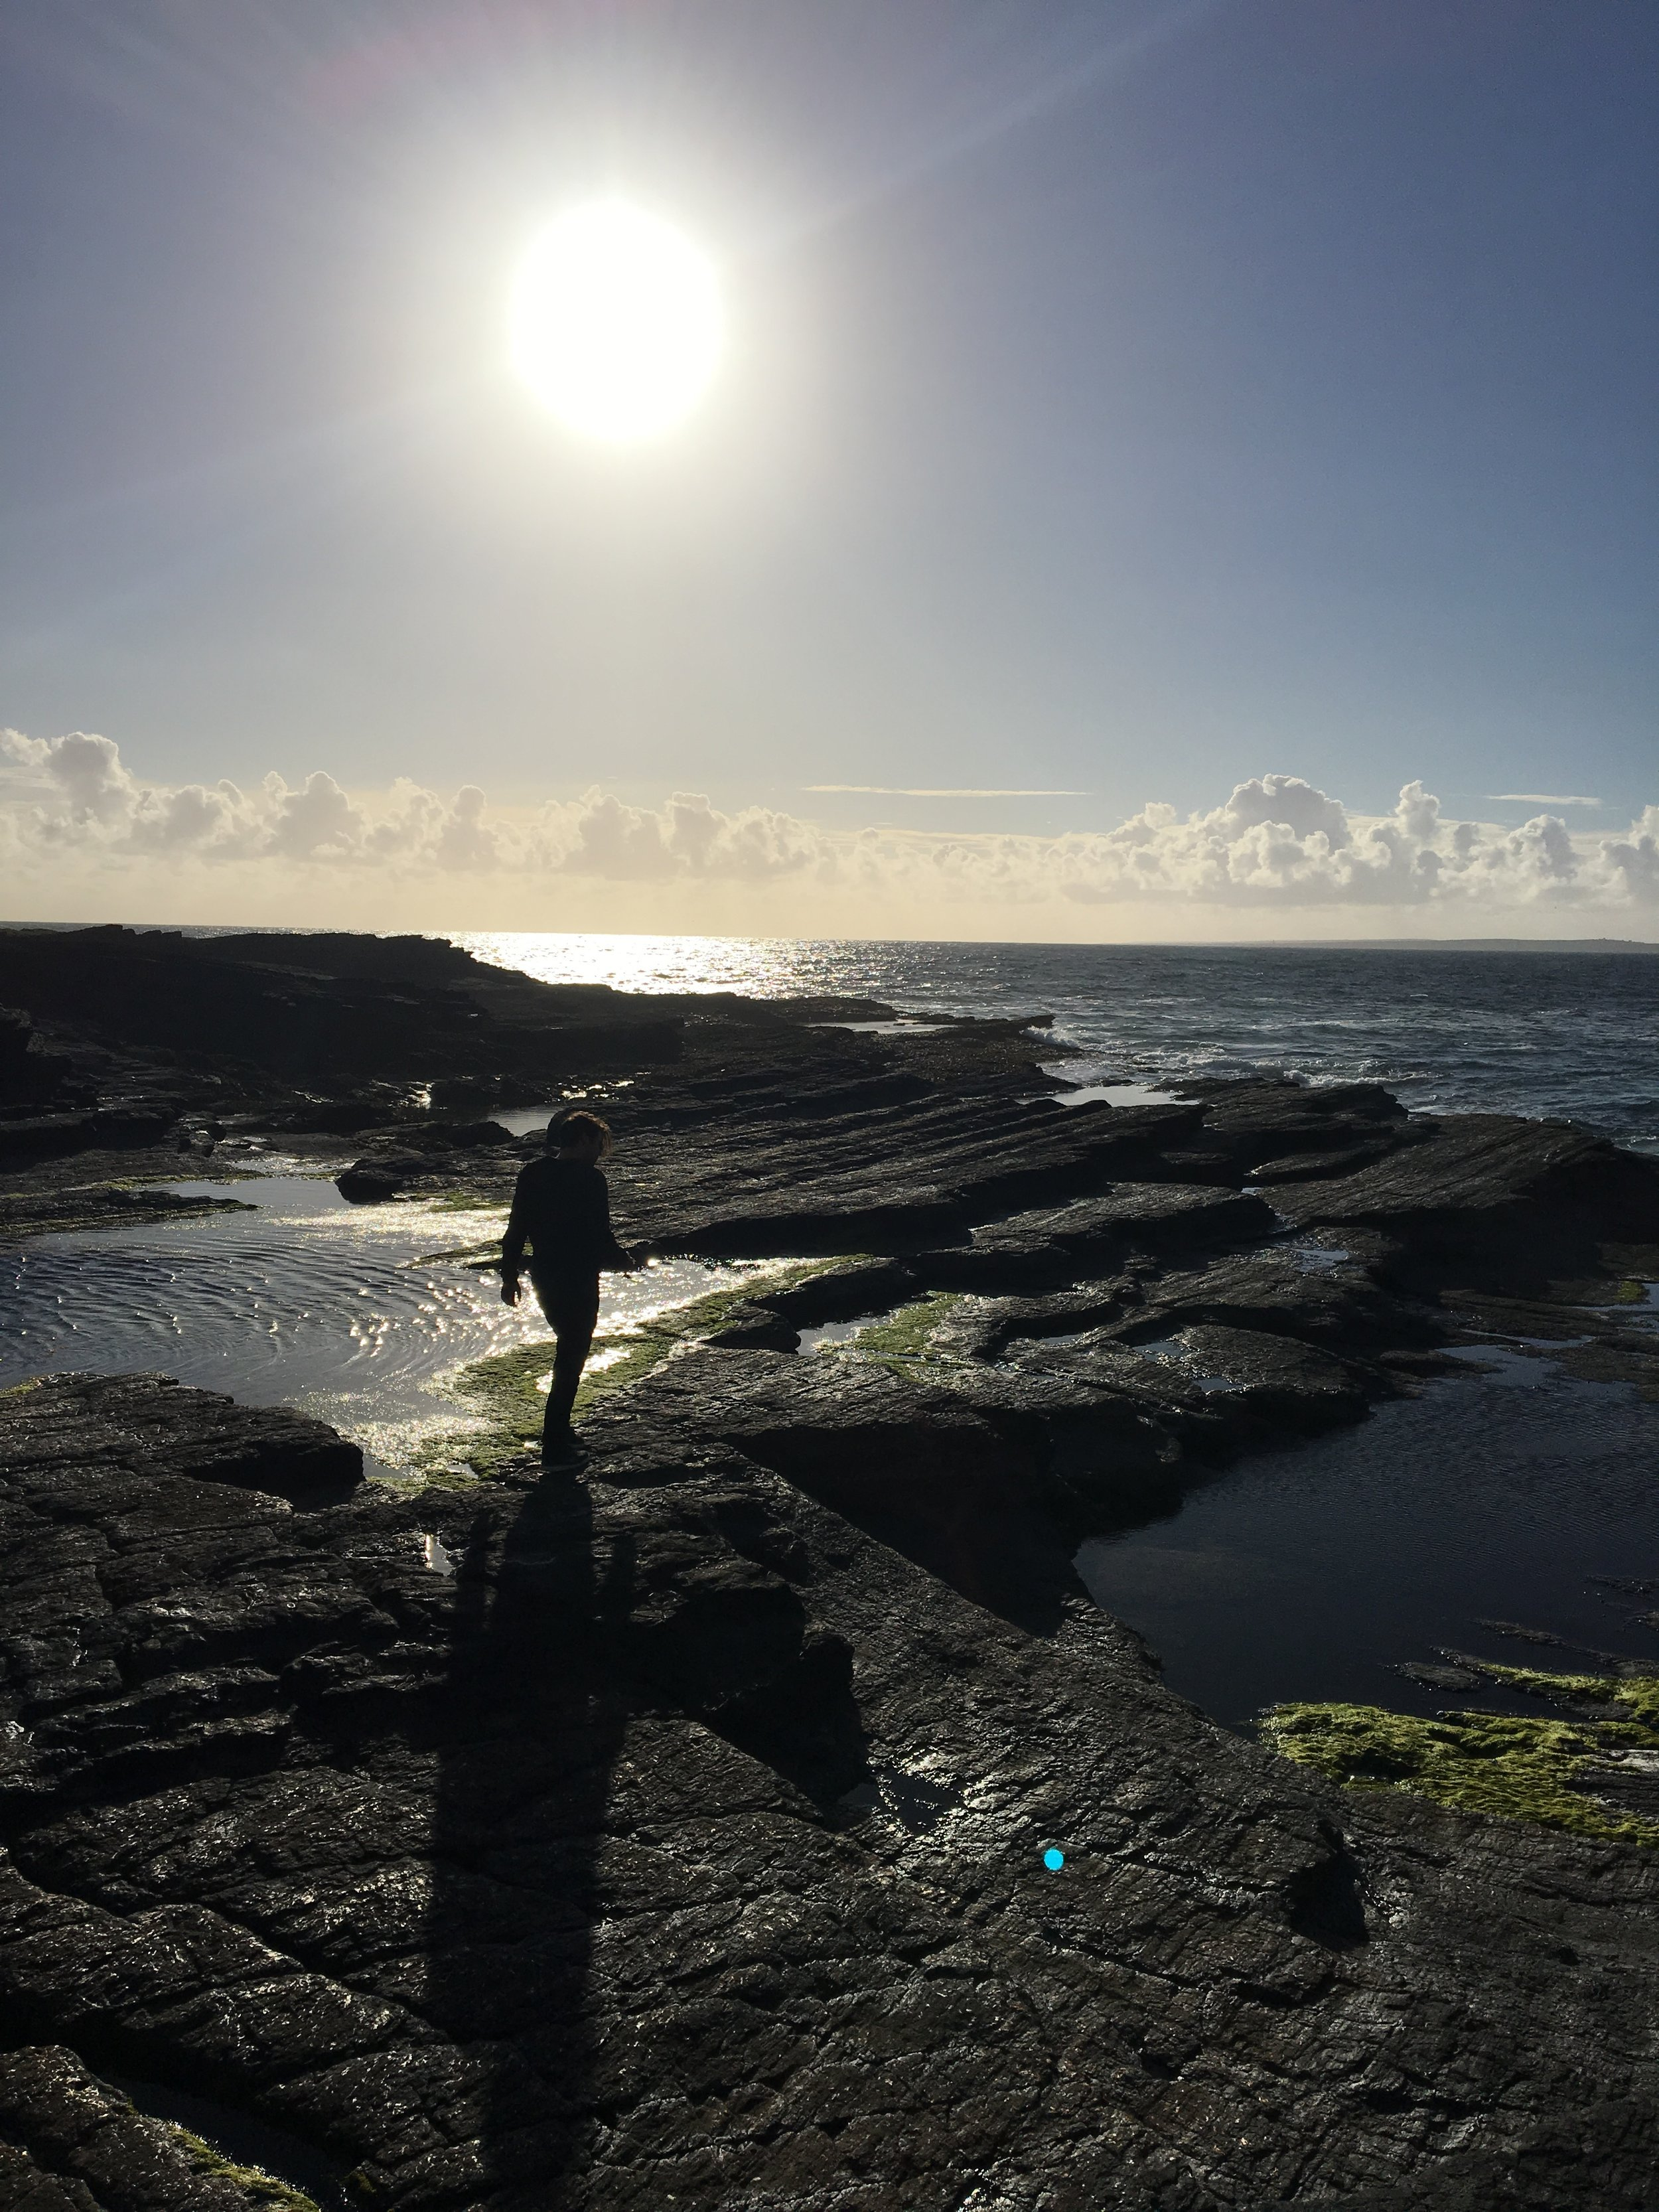 Cliffs of Moher - Doolin, County Clare, Ireland - Our 7 day Itinerary for Ireland